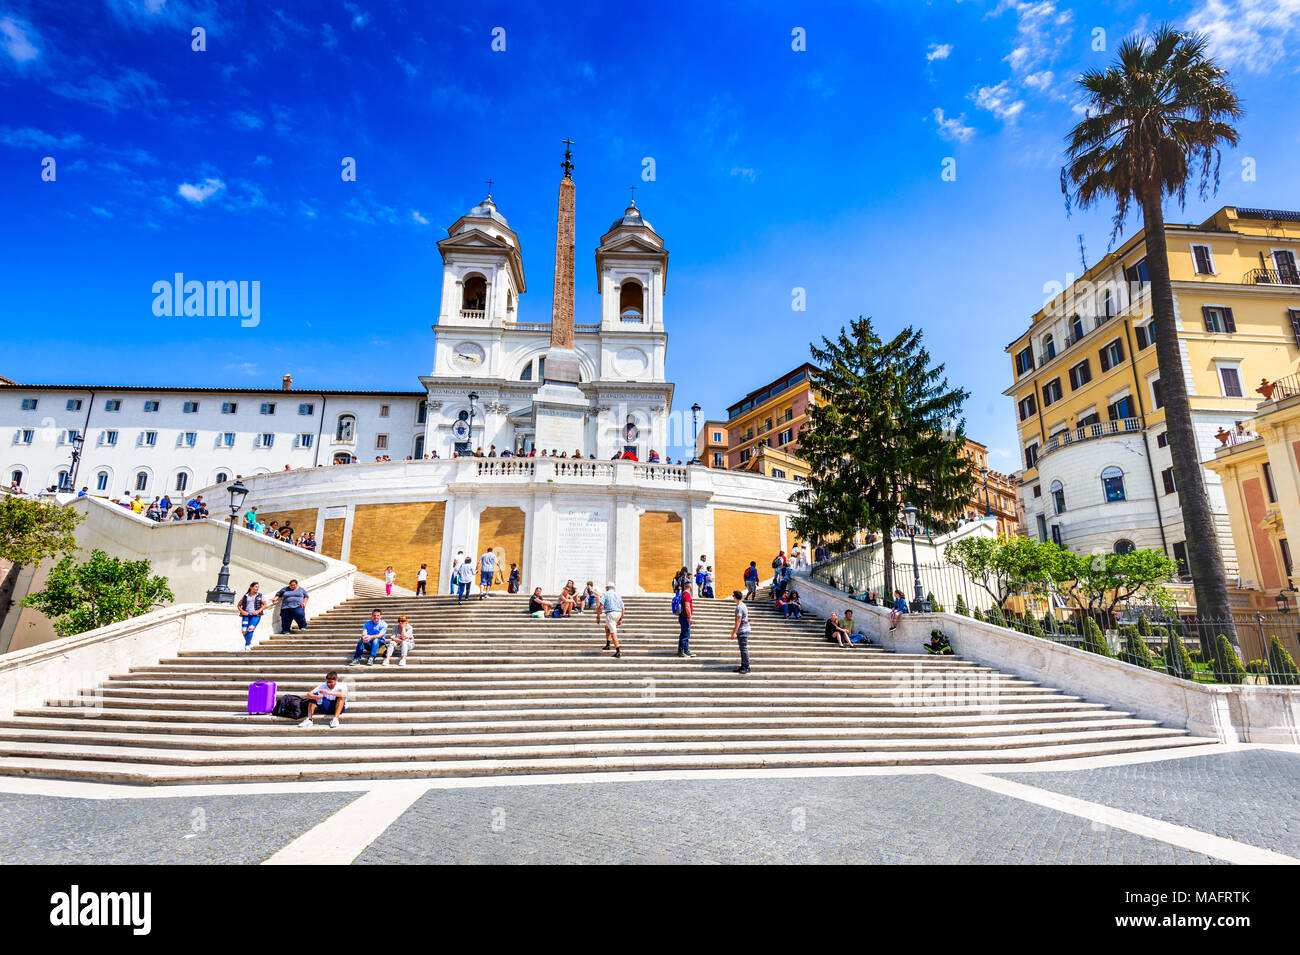 Rome, Italy - April 2017: Piazza di Spagna and Trinita dei Monti church, roman cityscape scenery. - Stock Image